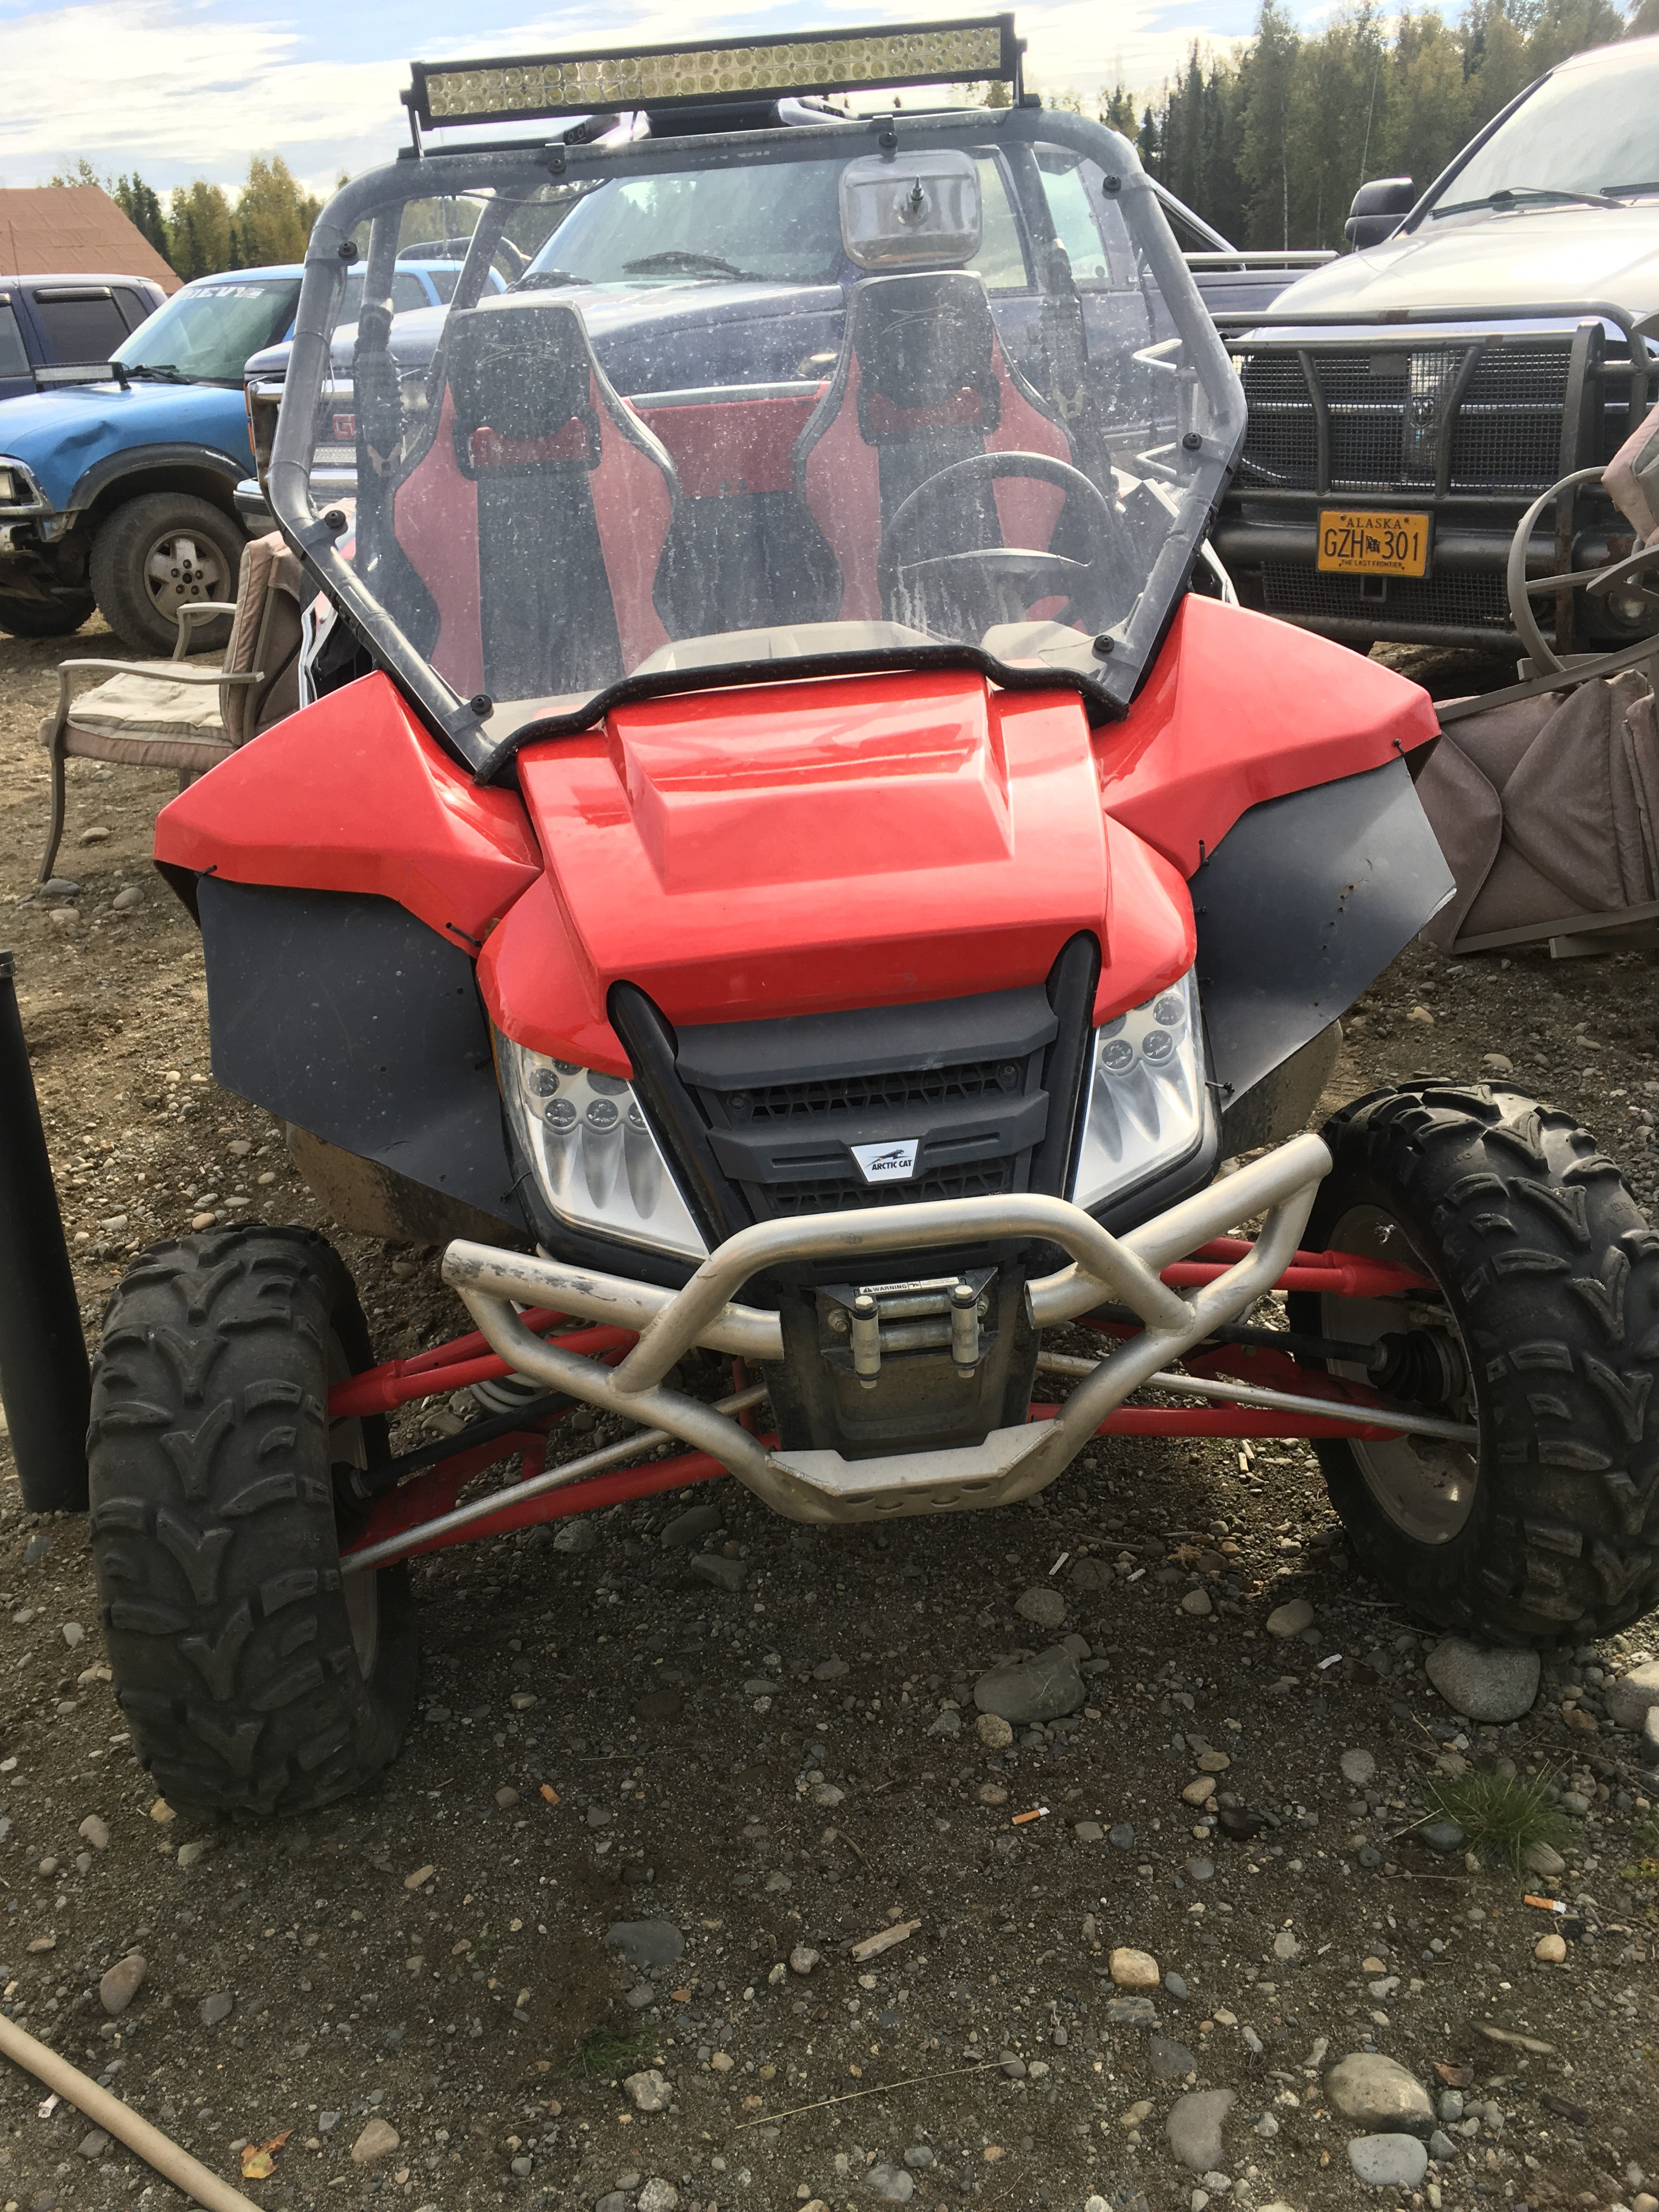 Engine Replacement Cost >> Wildcat 2013 Limited 1000 Engine Replacement Cost